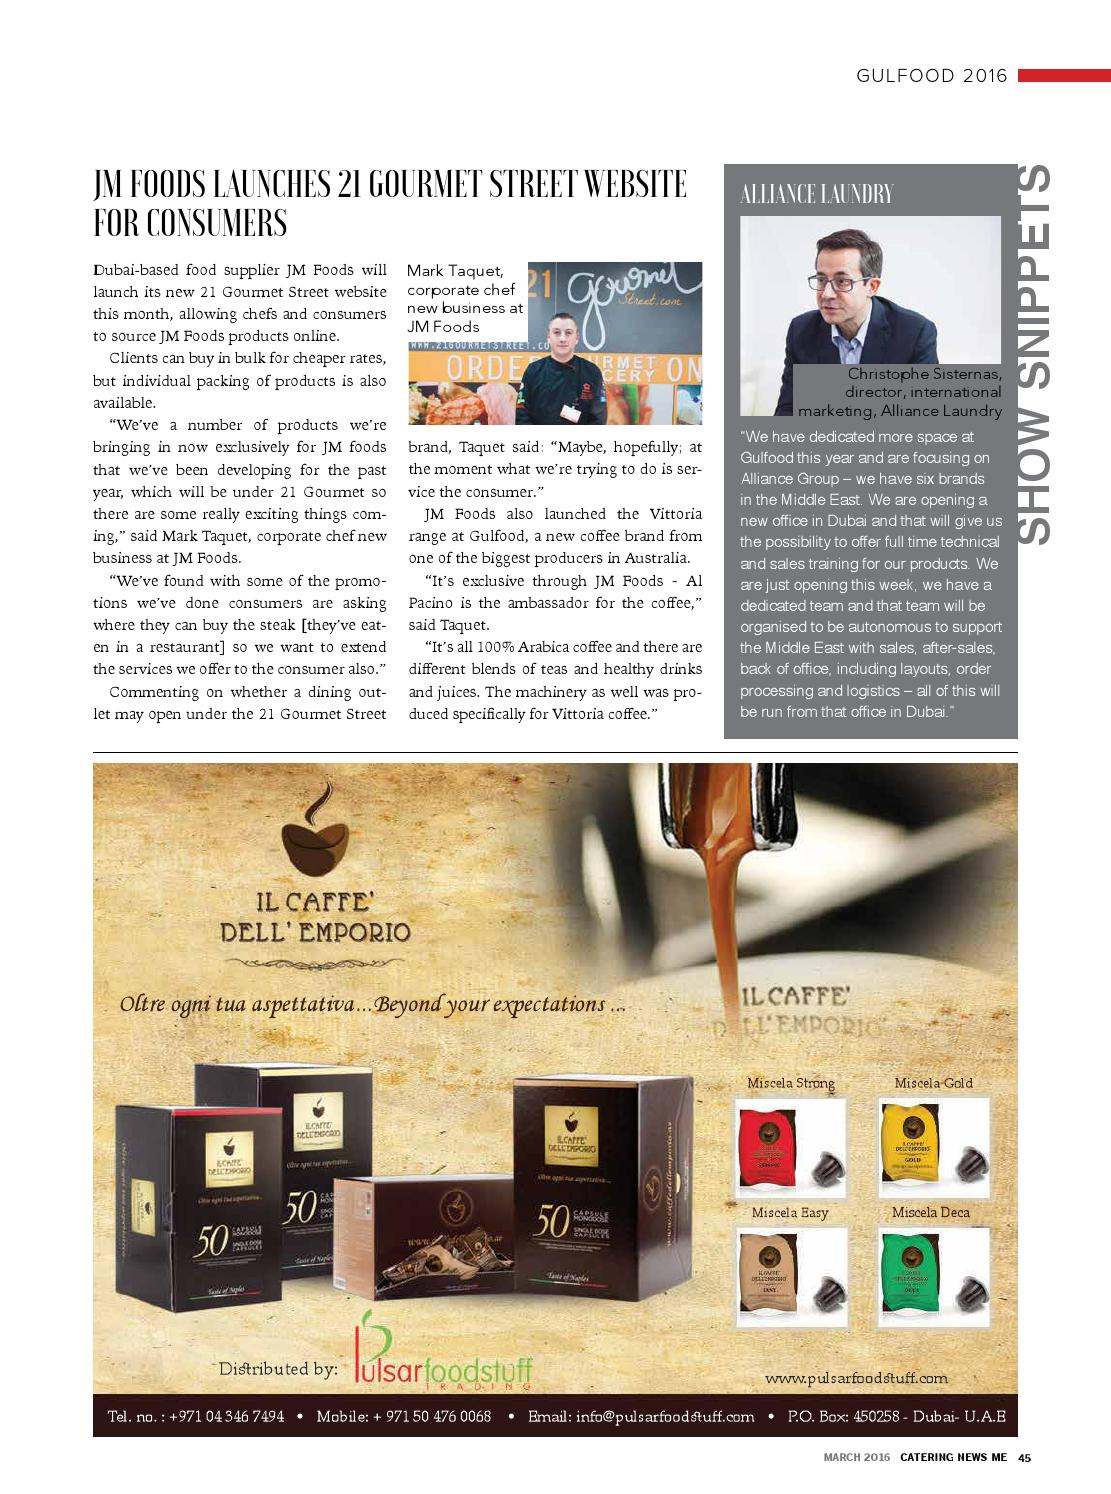 Catering News ME - March 2016